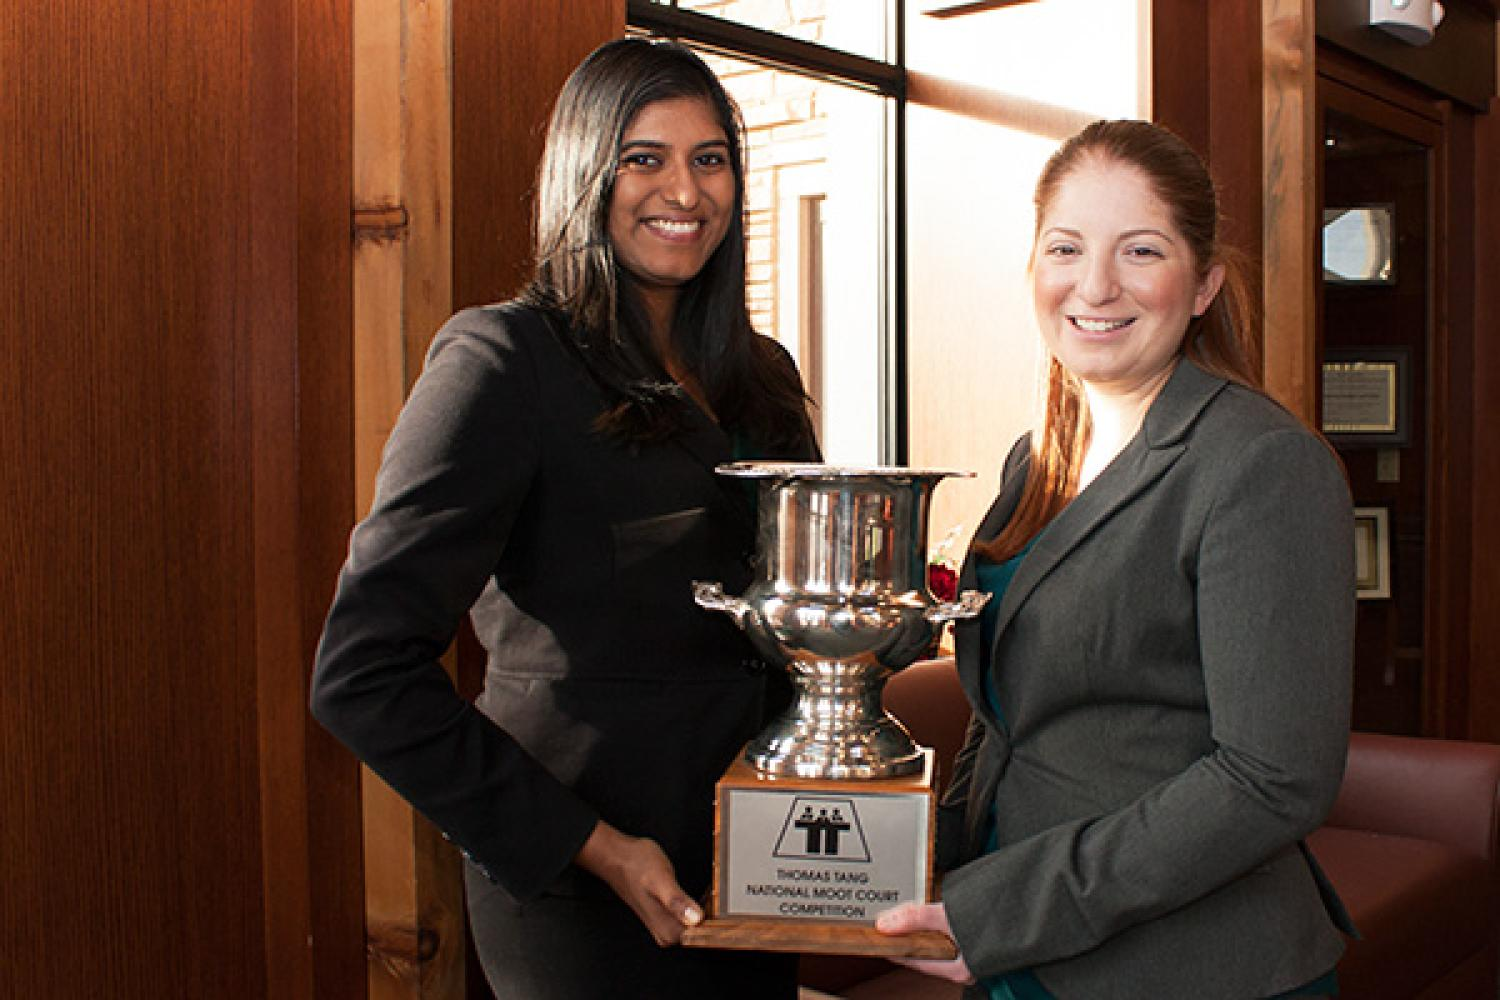 Surbhi Garg ('13) and Leah Gould ('14) won the National Asian Pacific American Bar Association's (NAPABA) National Thomas Tang Moot Court Competition in Washington, D.C.